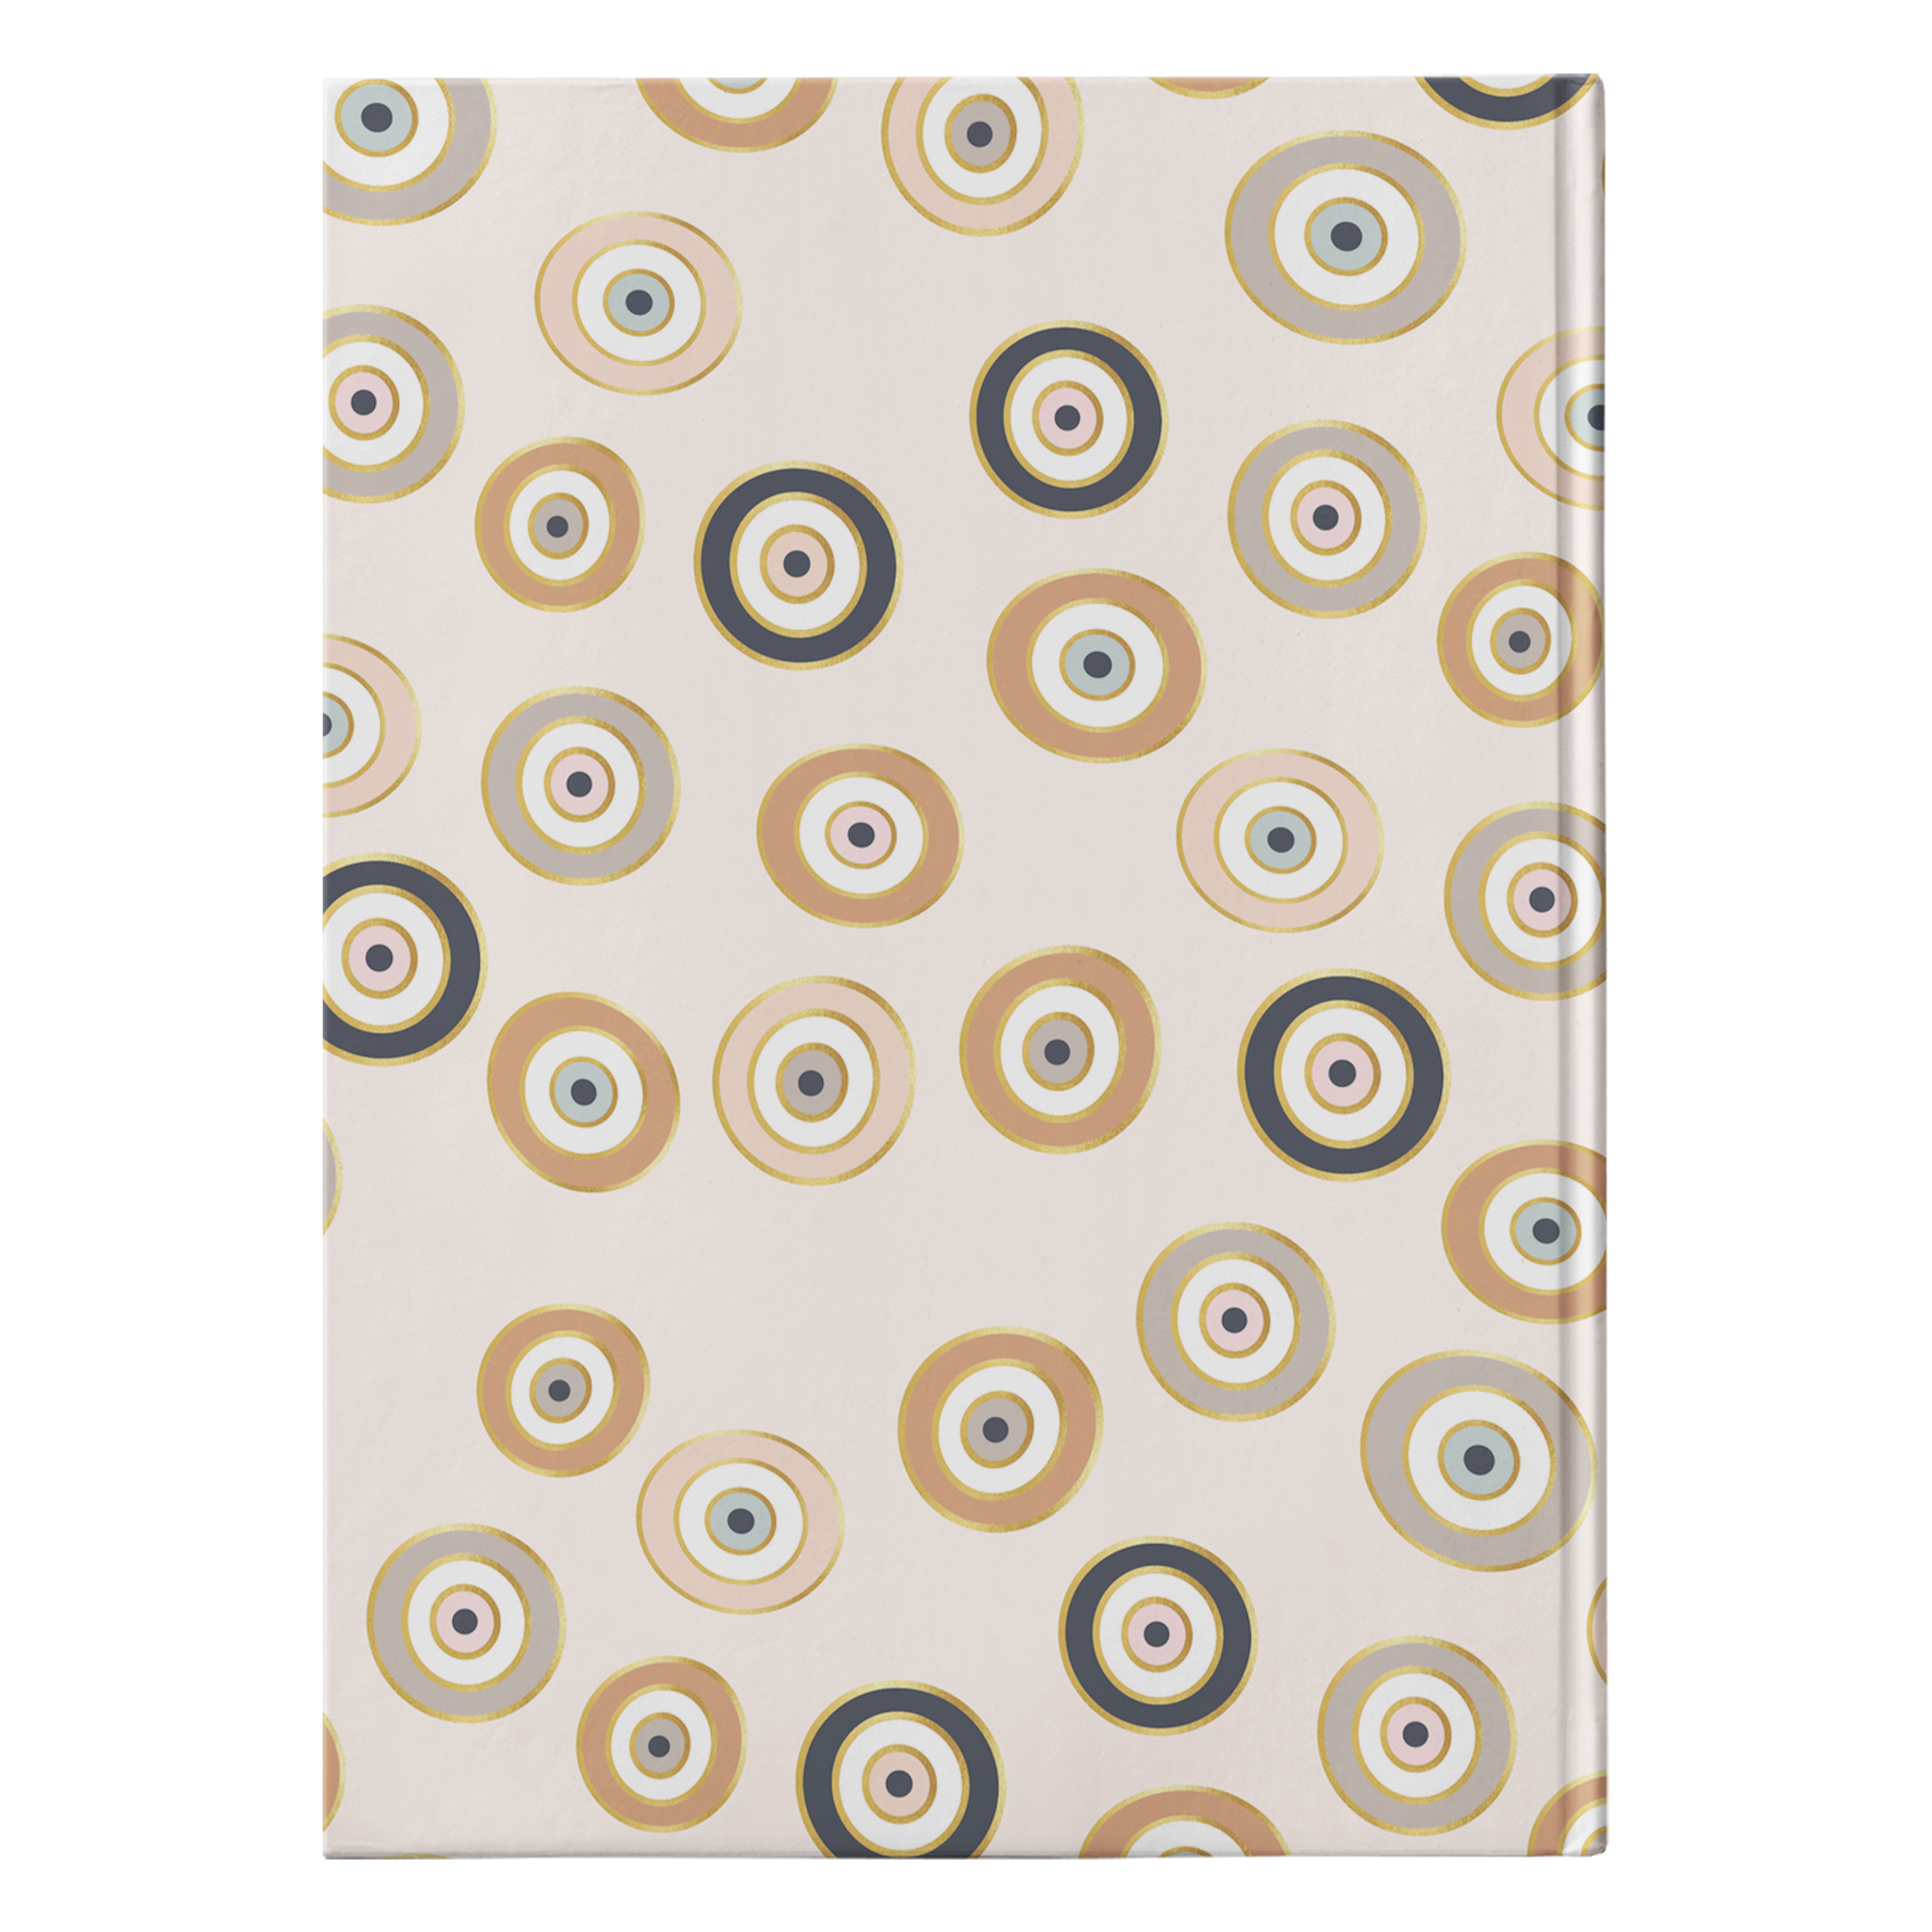 Karma Eyes hardcover journal